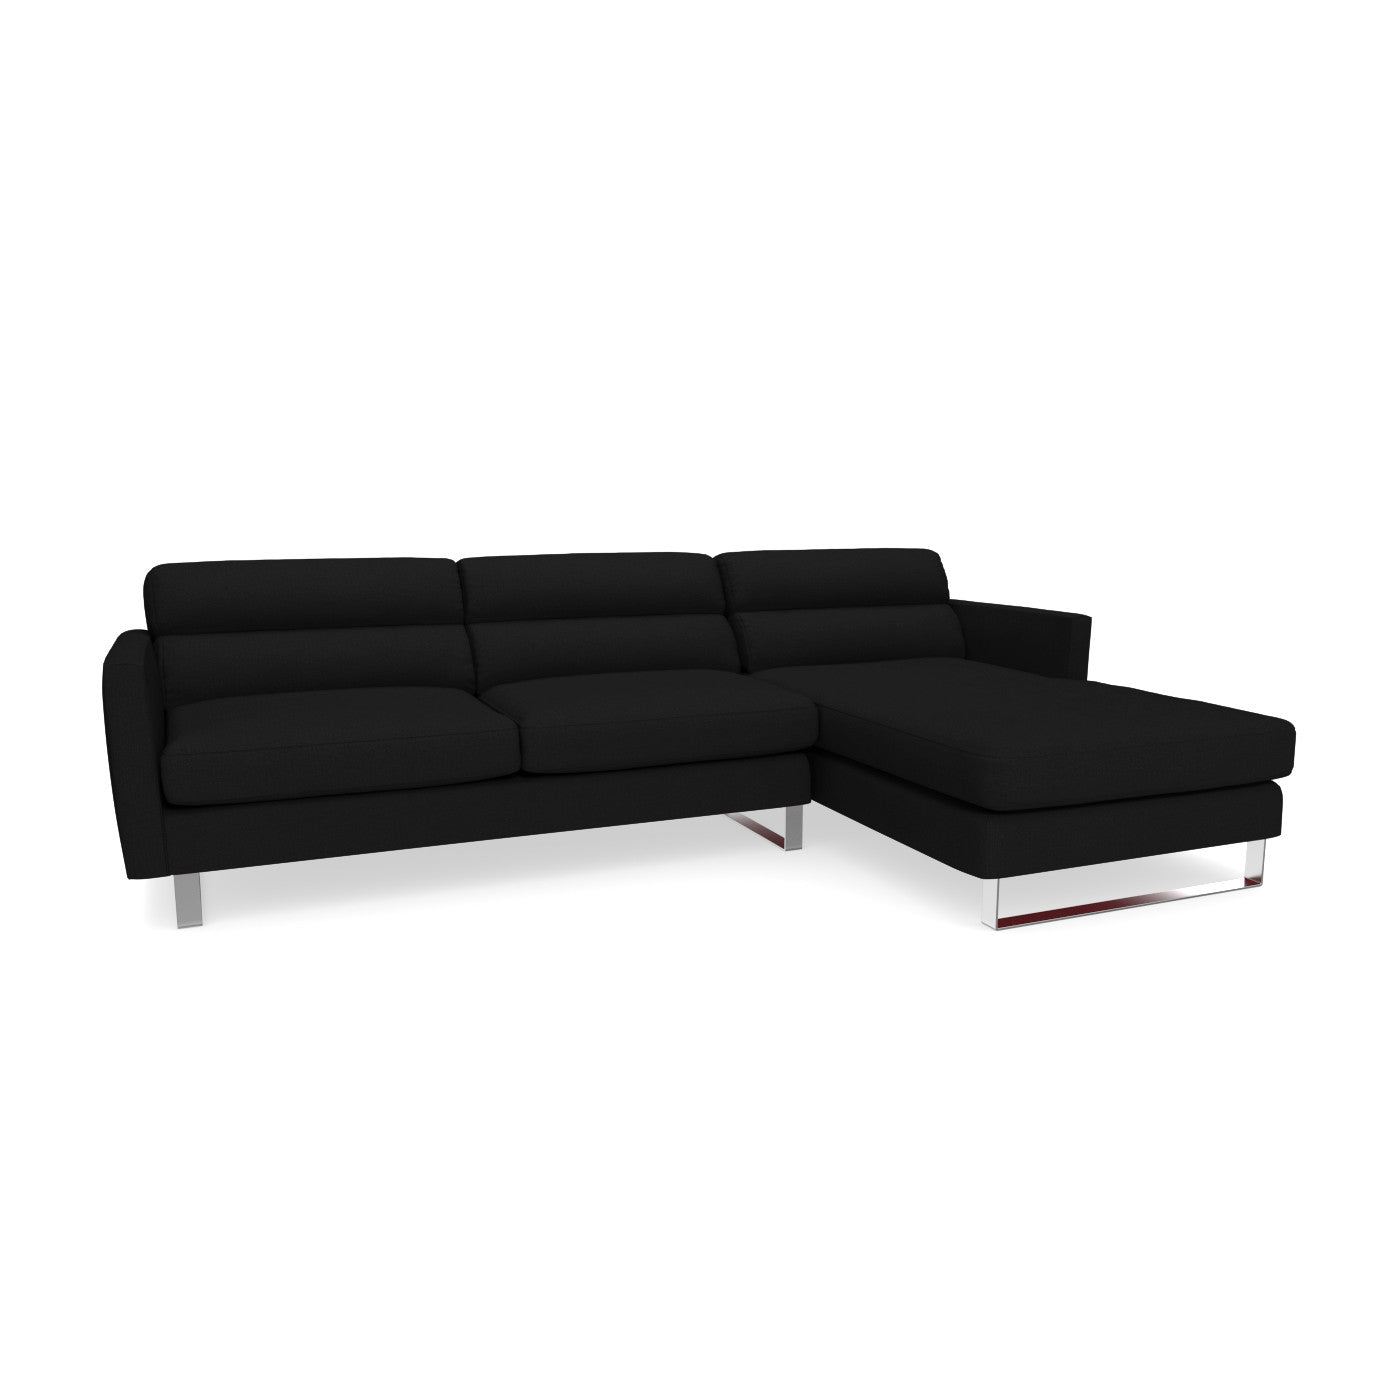 Savannah Eco Friendly Sectional Sofa 2 Piece – Apt2B